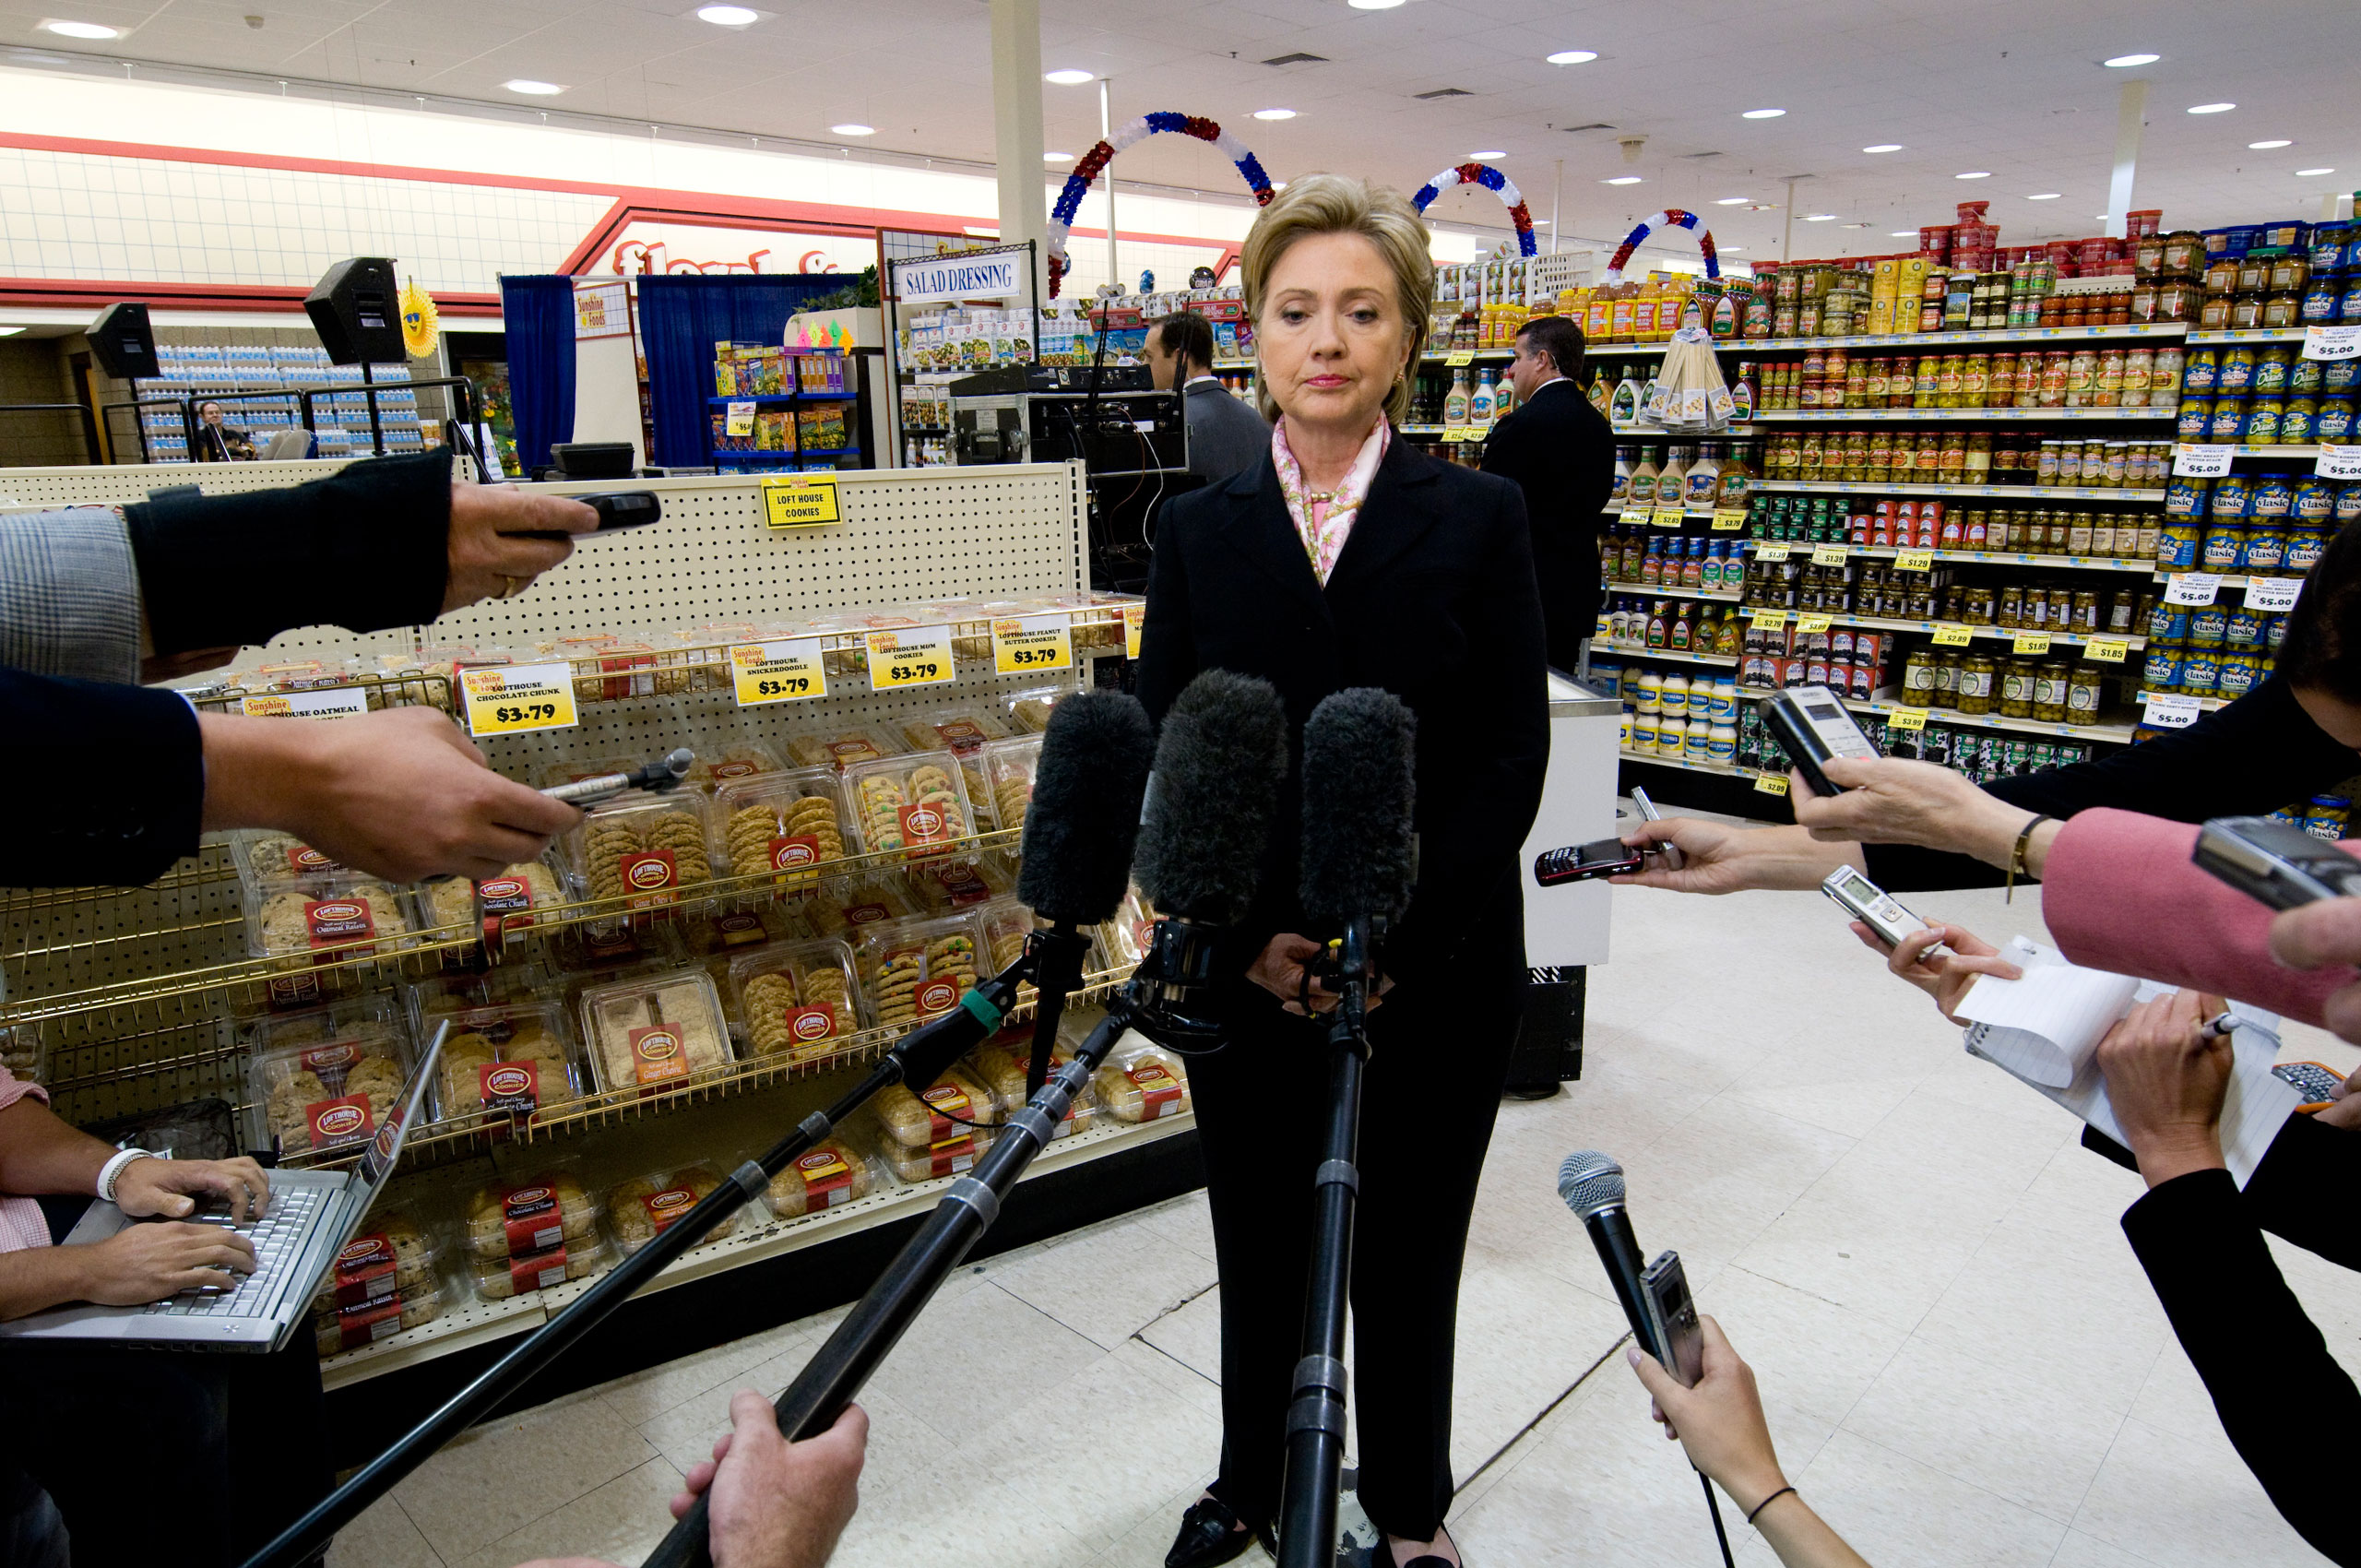 Sen. Hillary Clinton responding to press questions at a tense time during the primary elections in 2008.